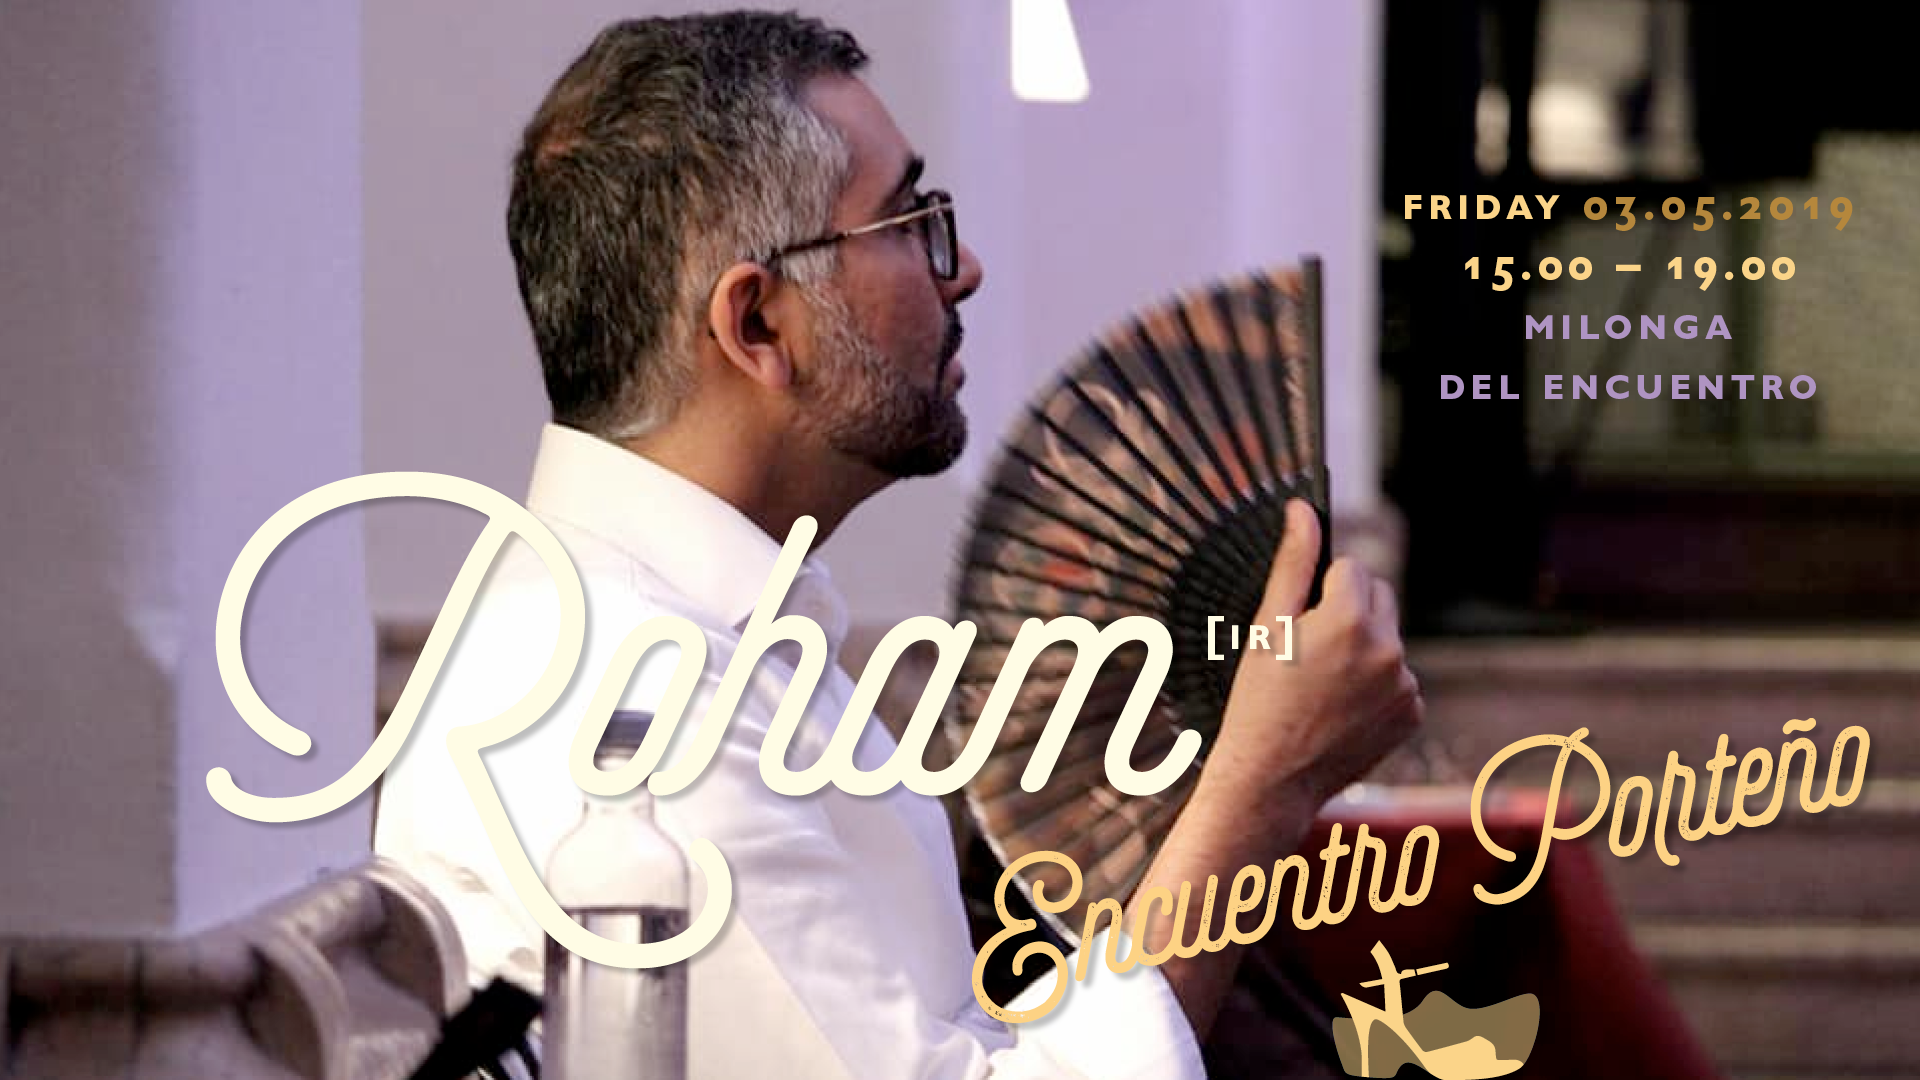 ep2019-event-header-roham